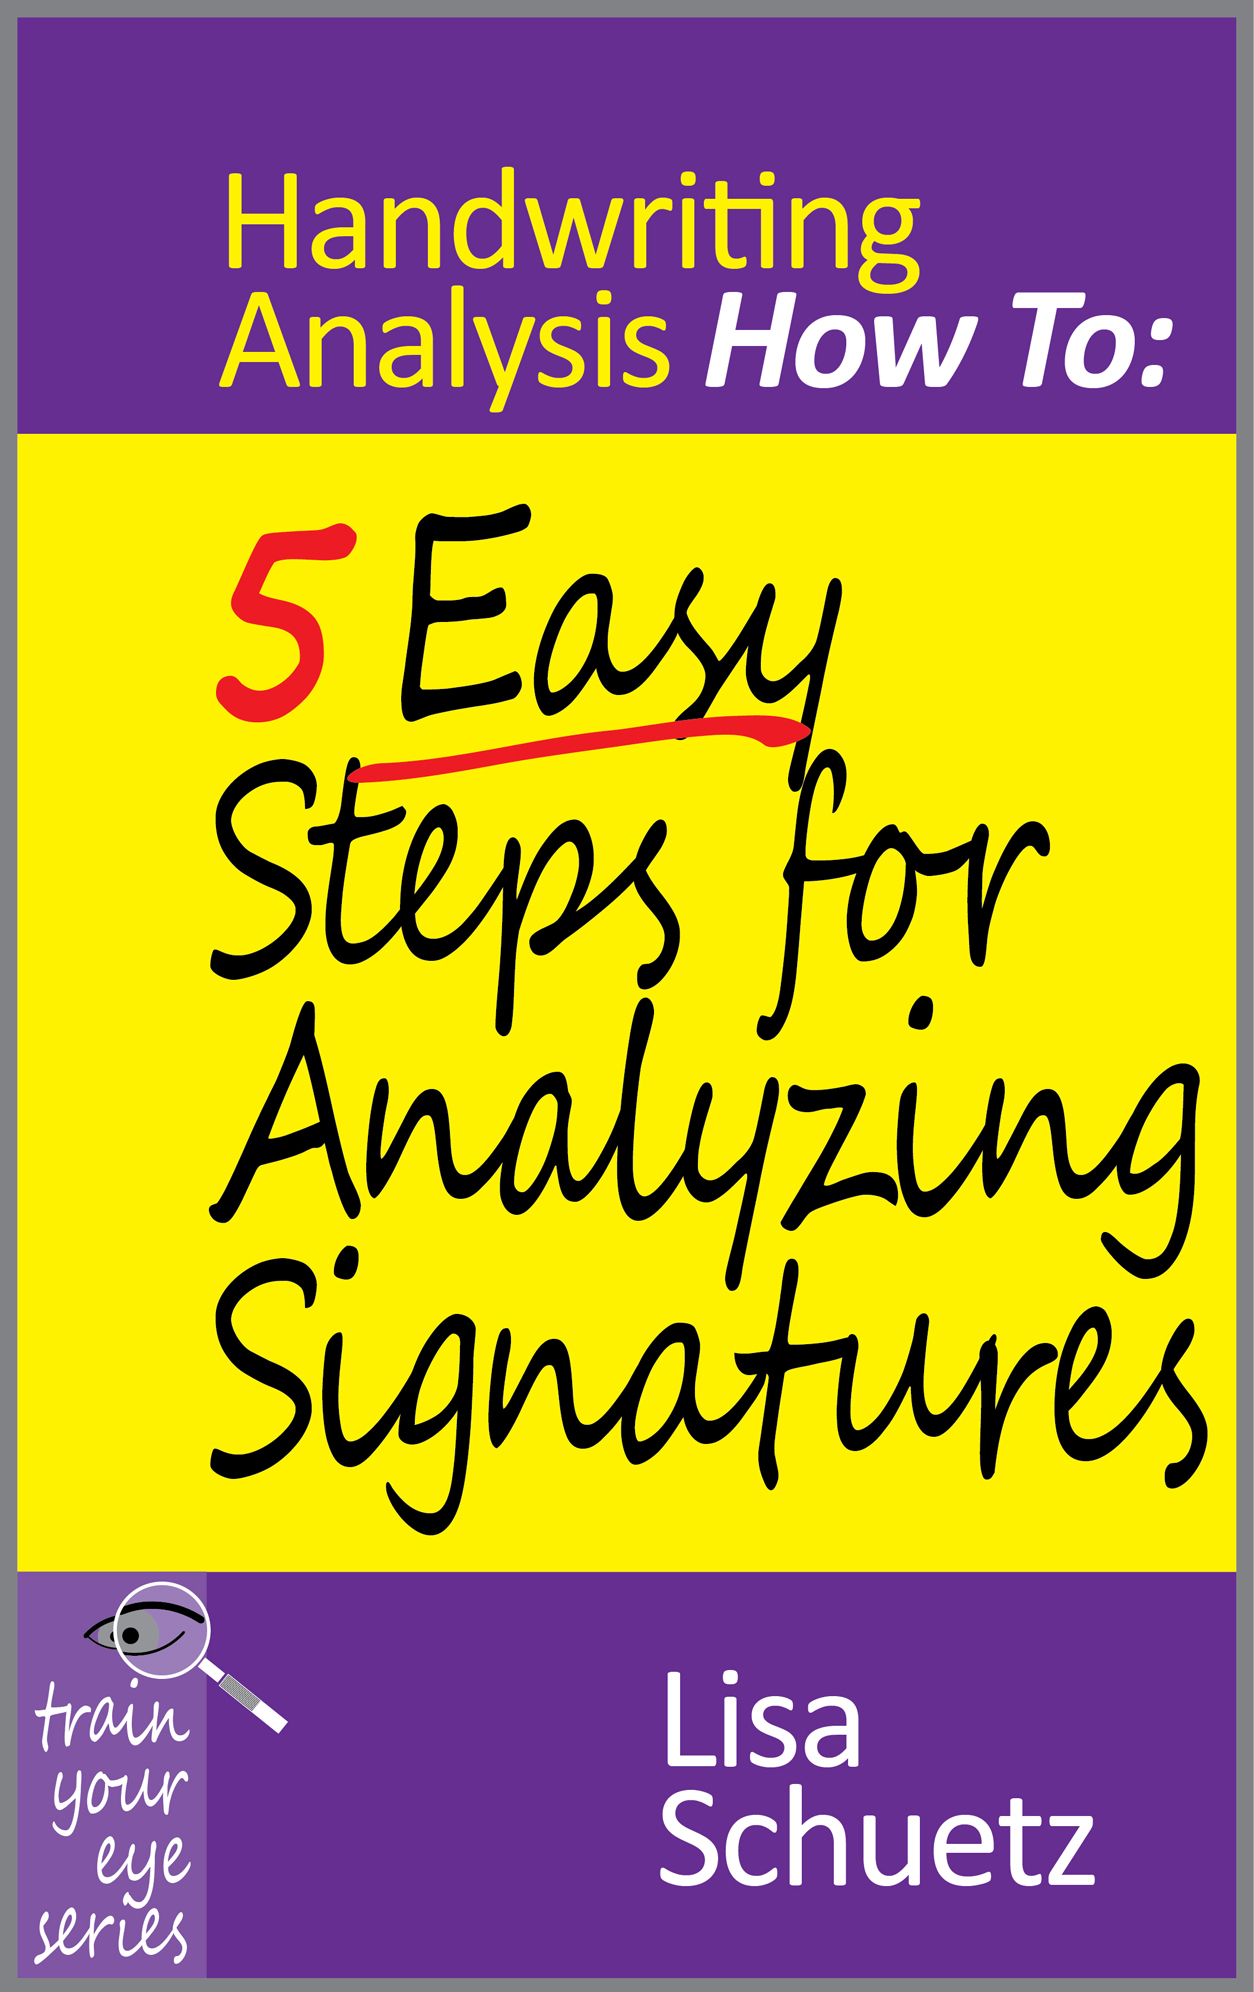 free online handwriting analysis course